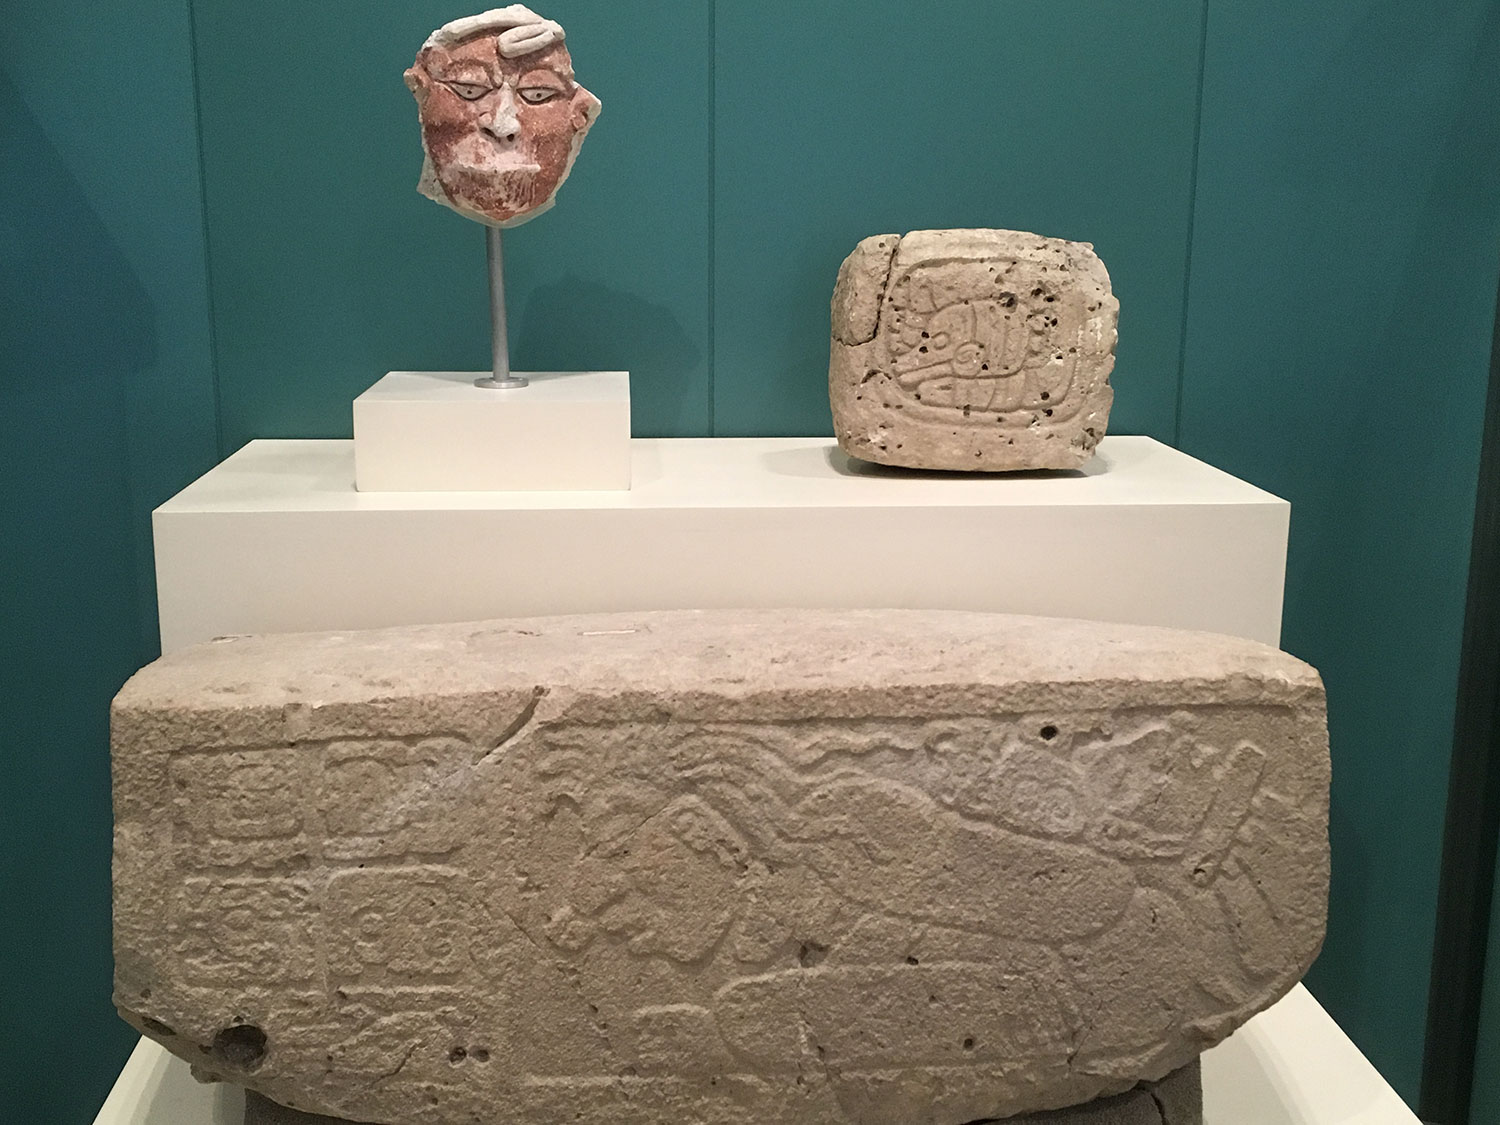 The mask of a captive, the glyph and the step with the captive frieze, displayed at the Cancún Mayan Museum.